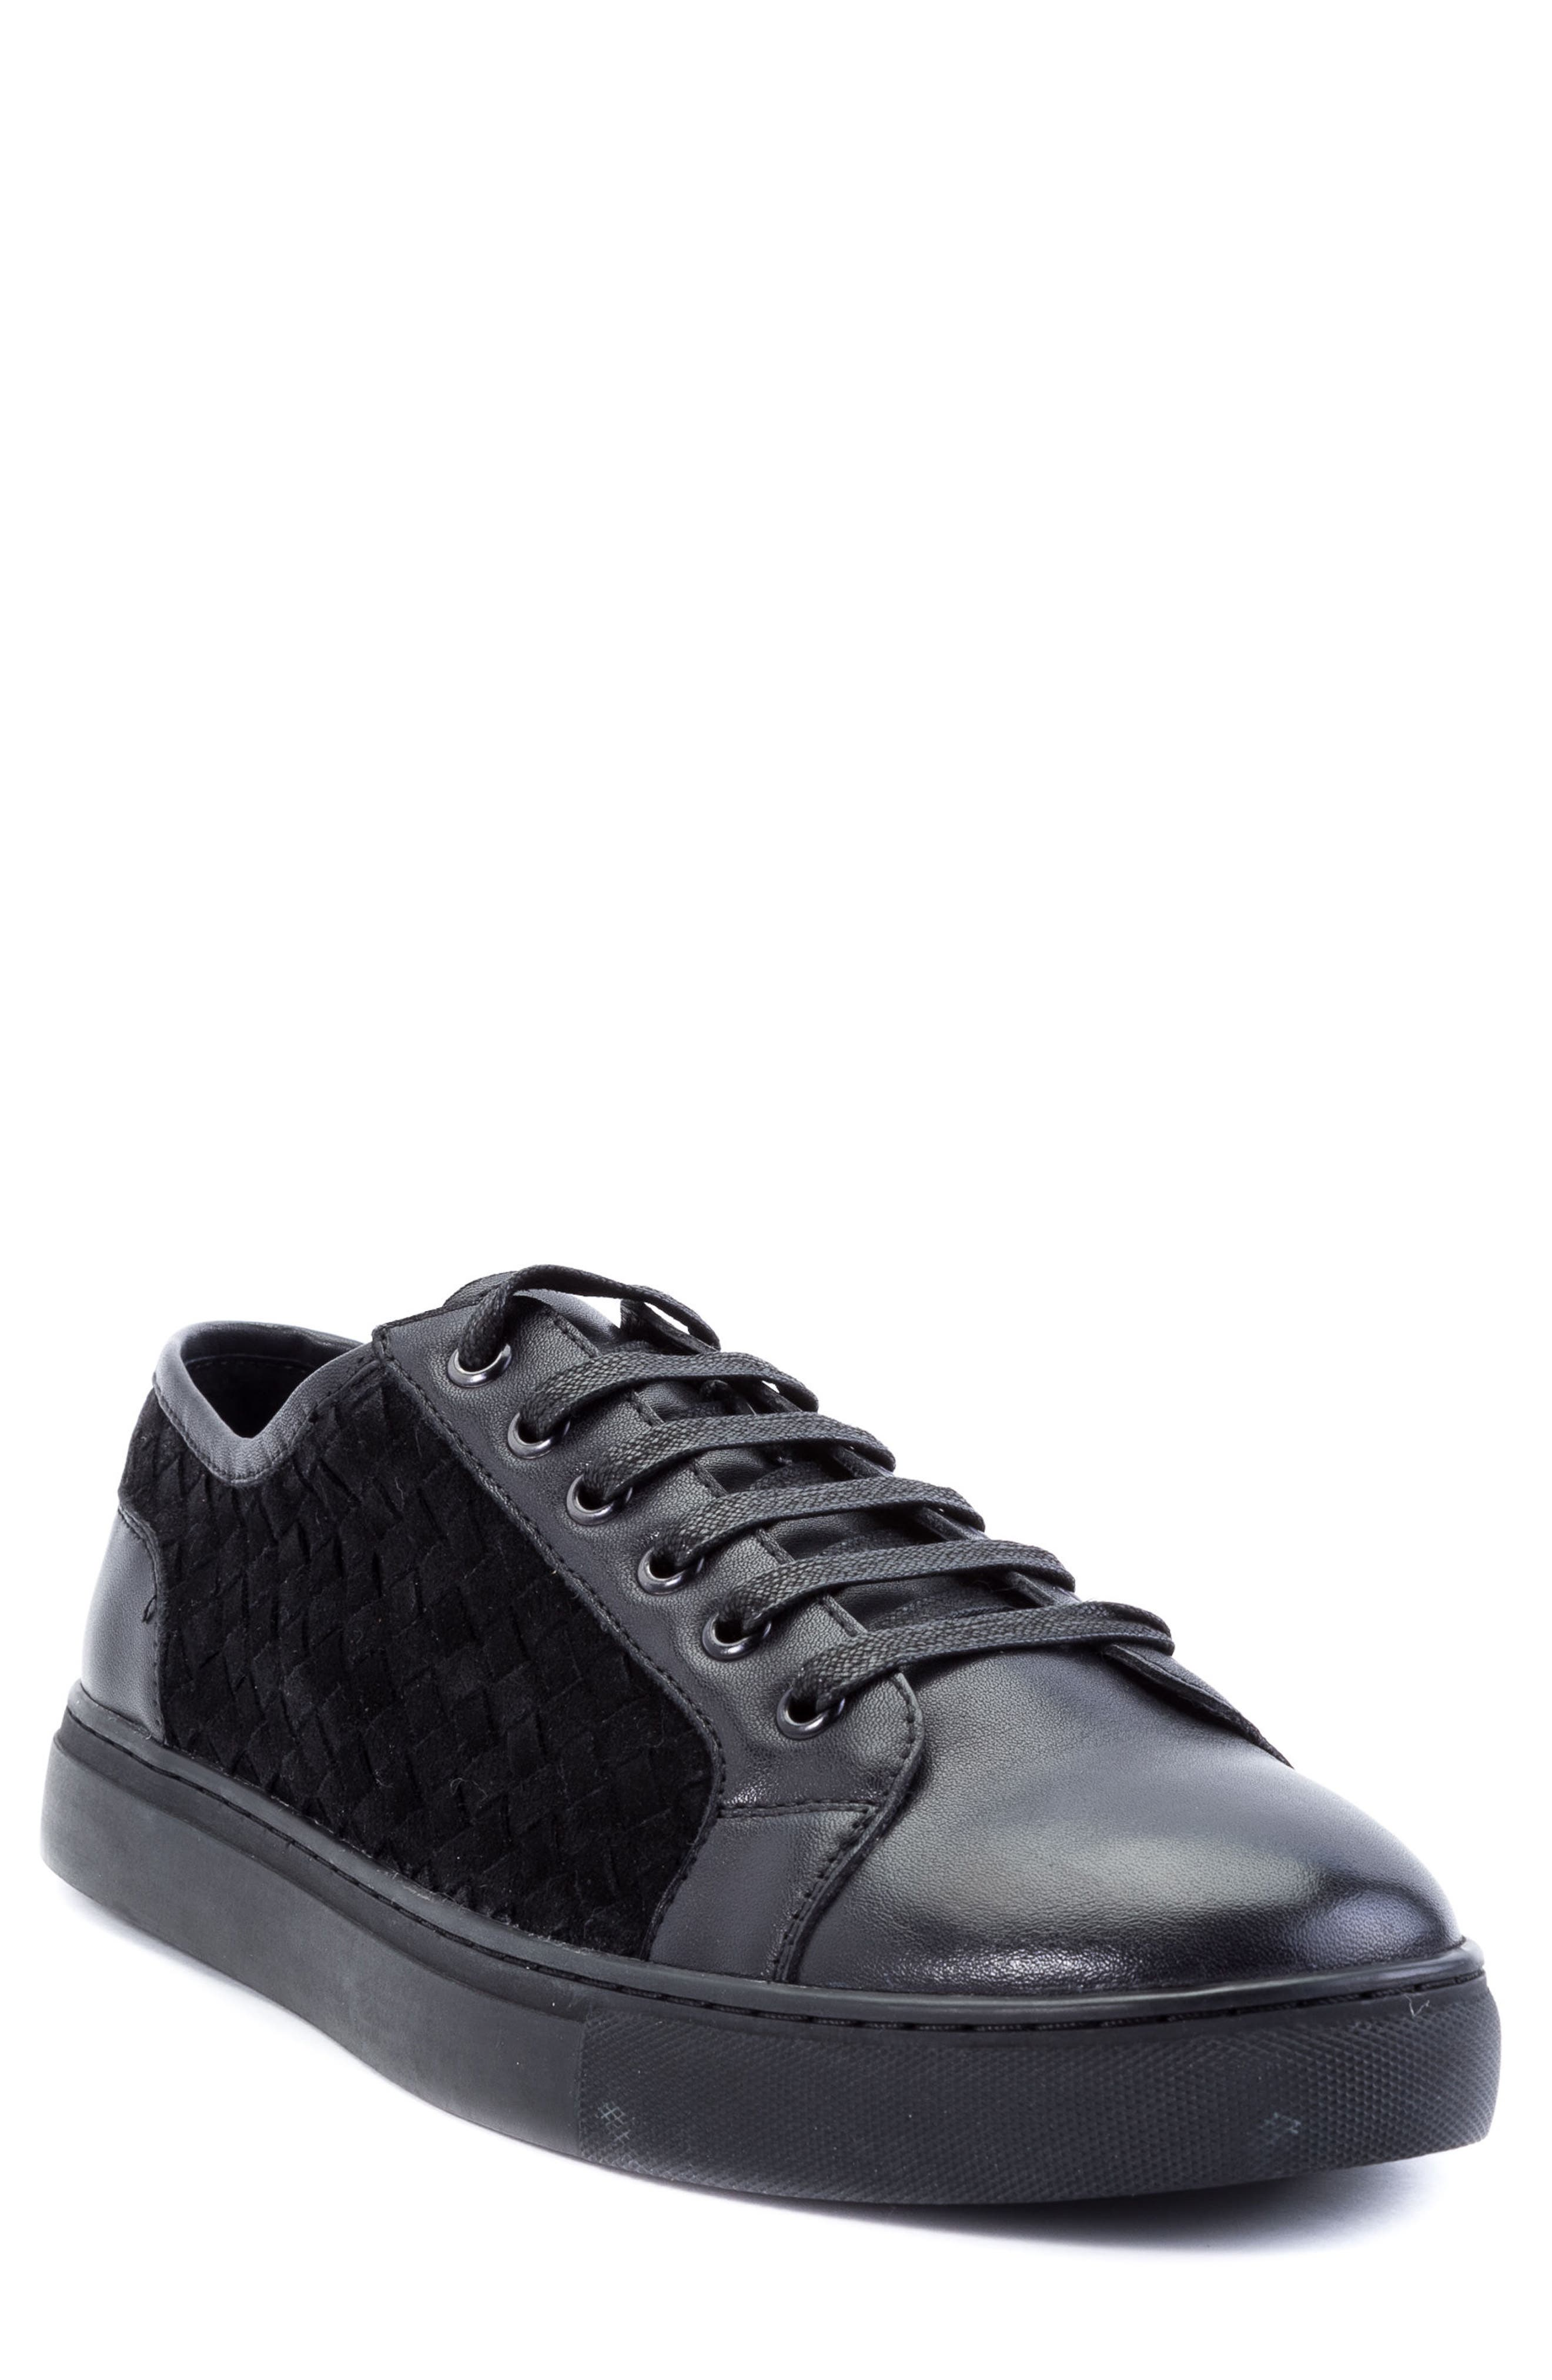 Player Woven Low Top Sneaker,                             Main thumbnail 1, color,                             BLACK LEATHER/ SUEDE